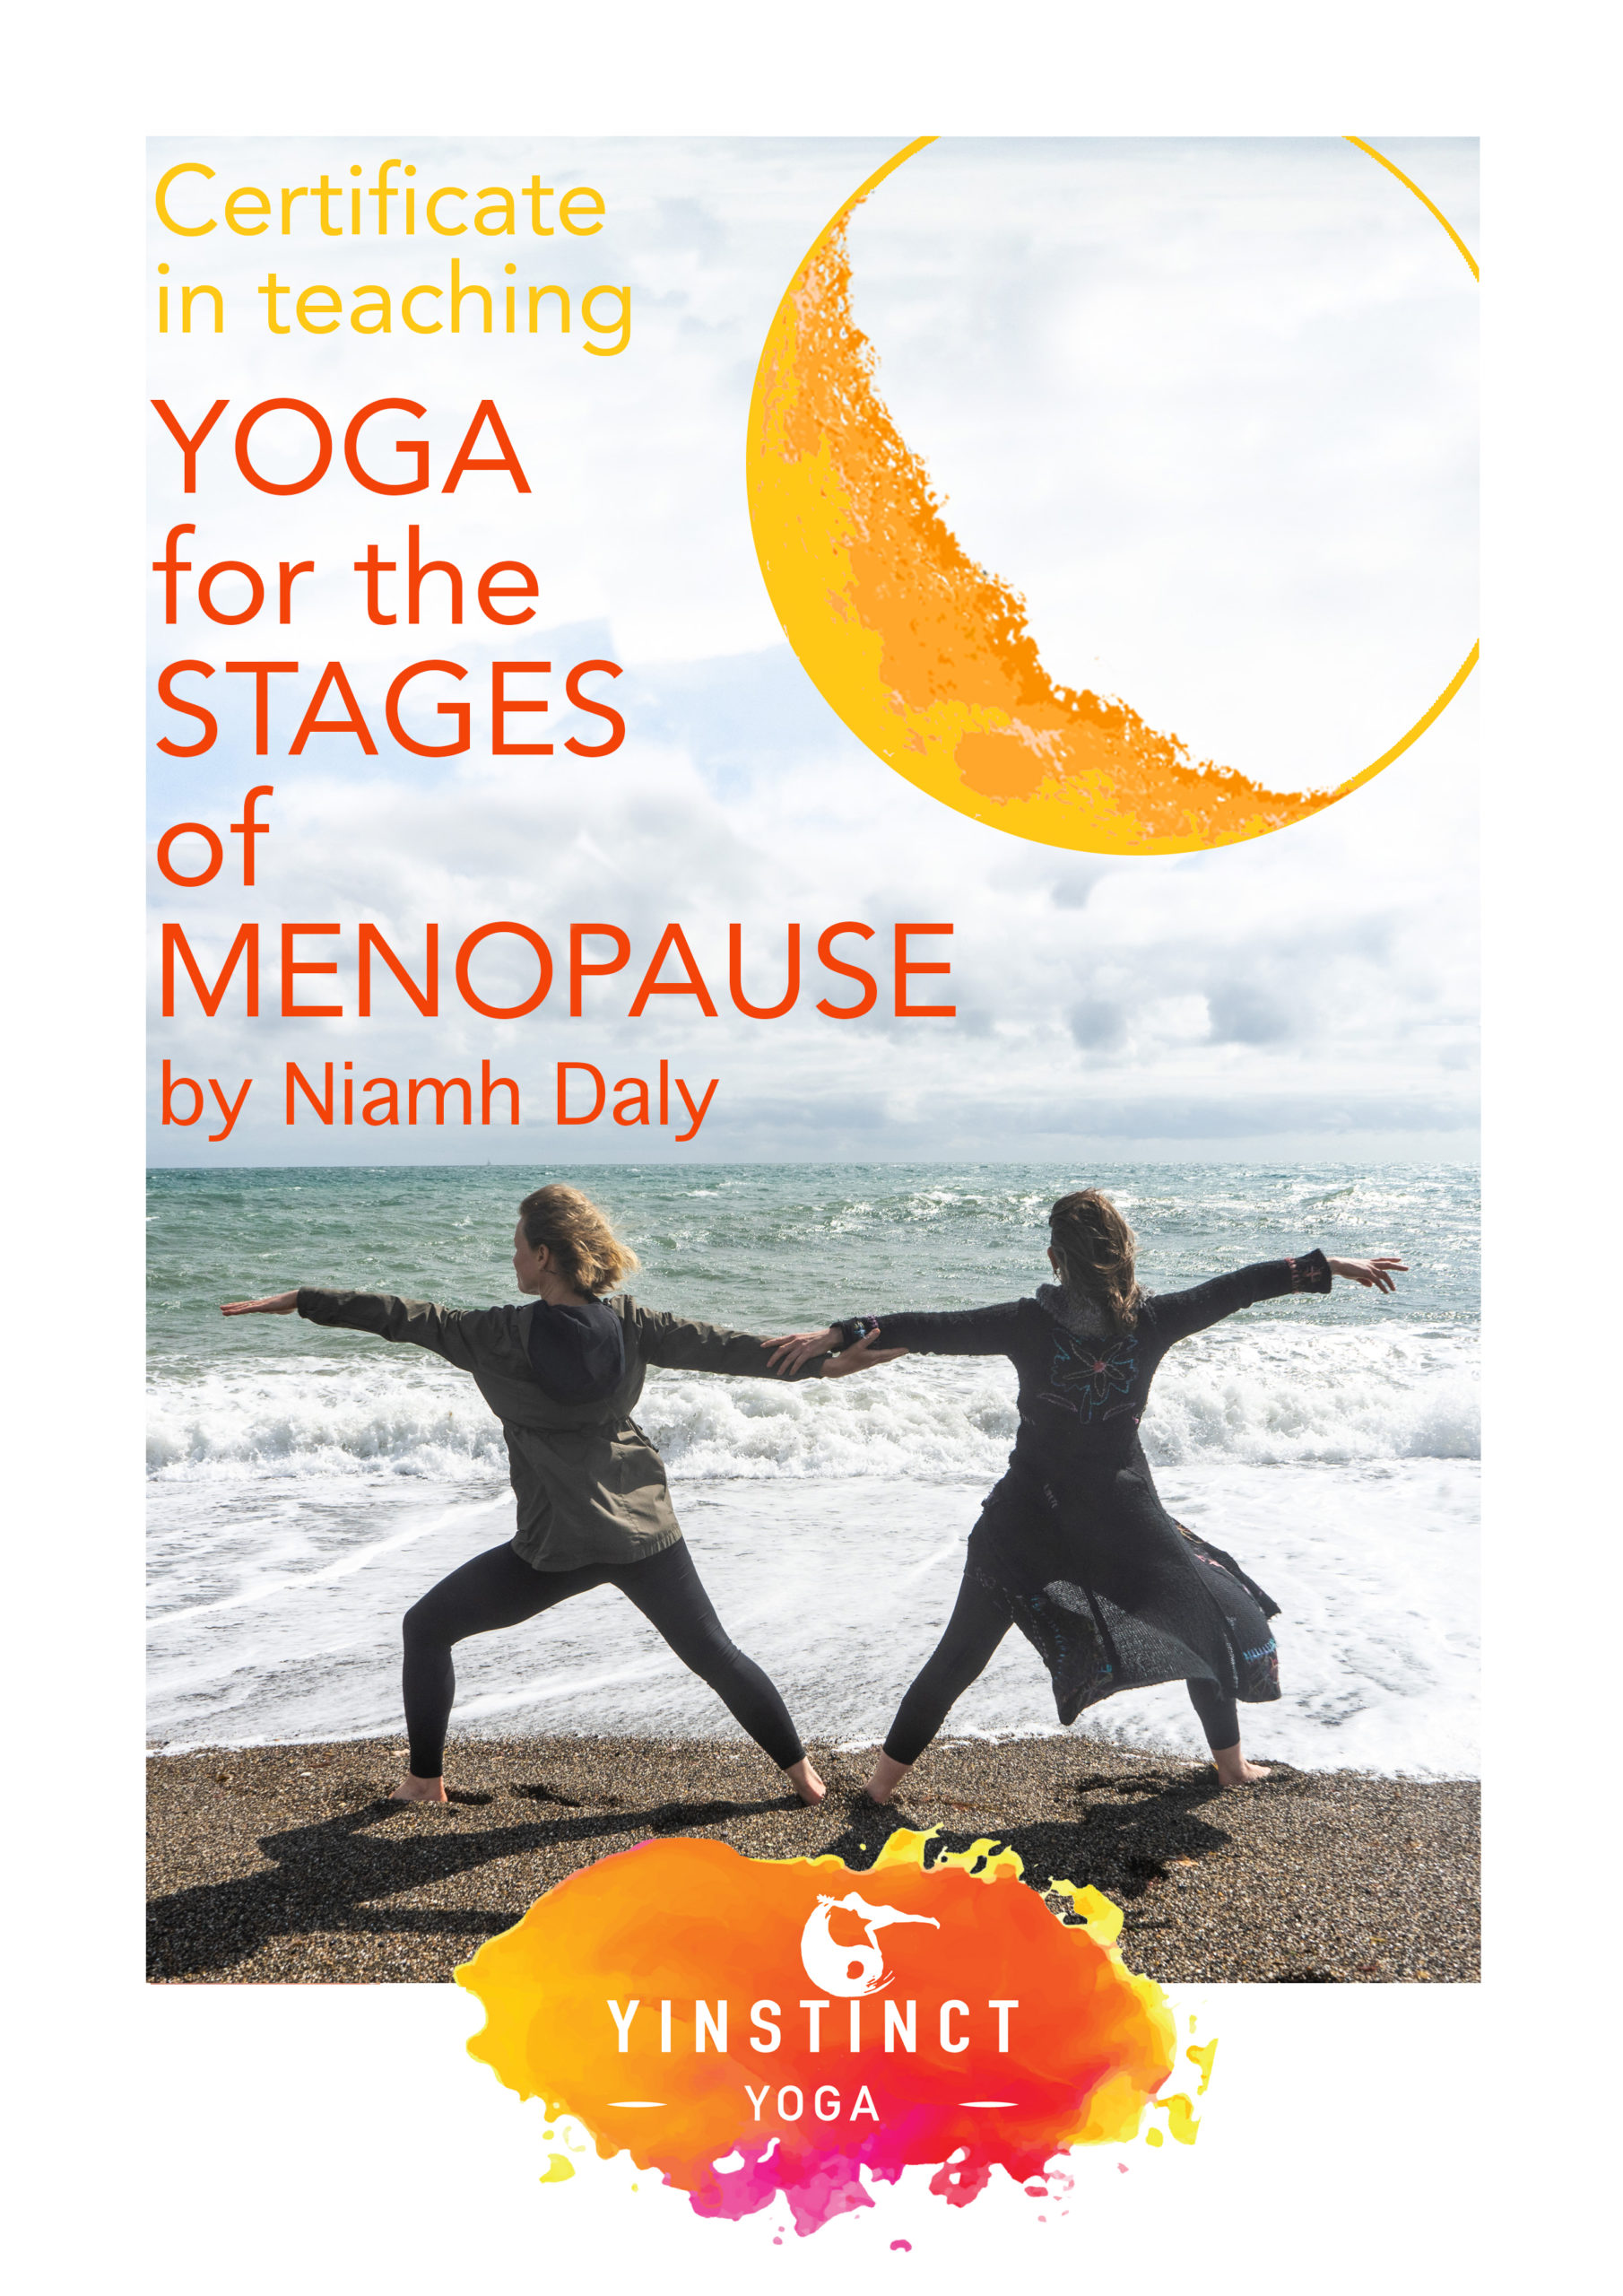 Certificate in Teaching Yoga for Menopause